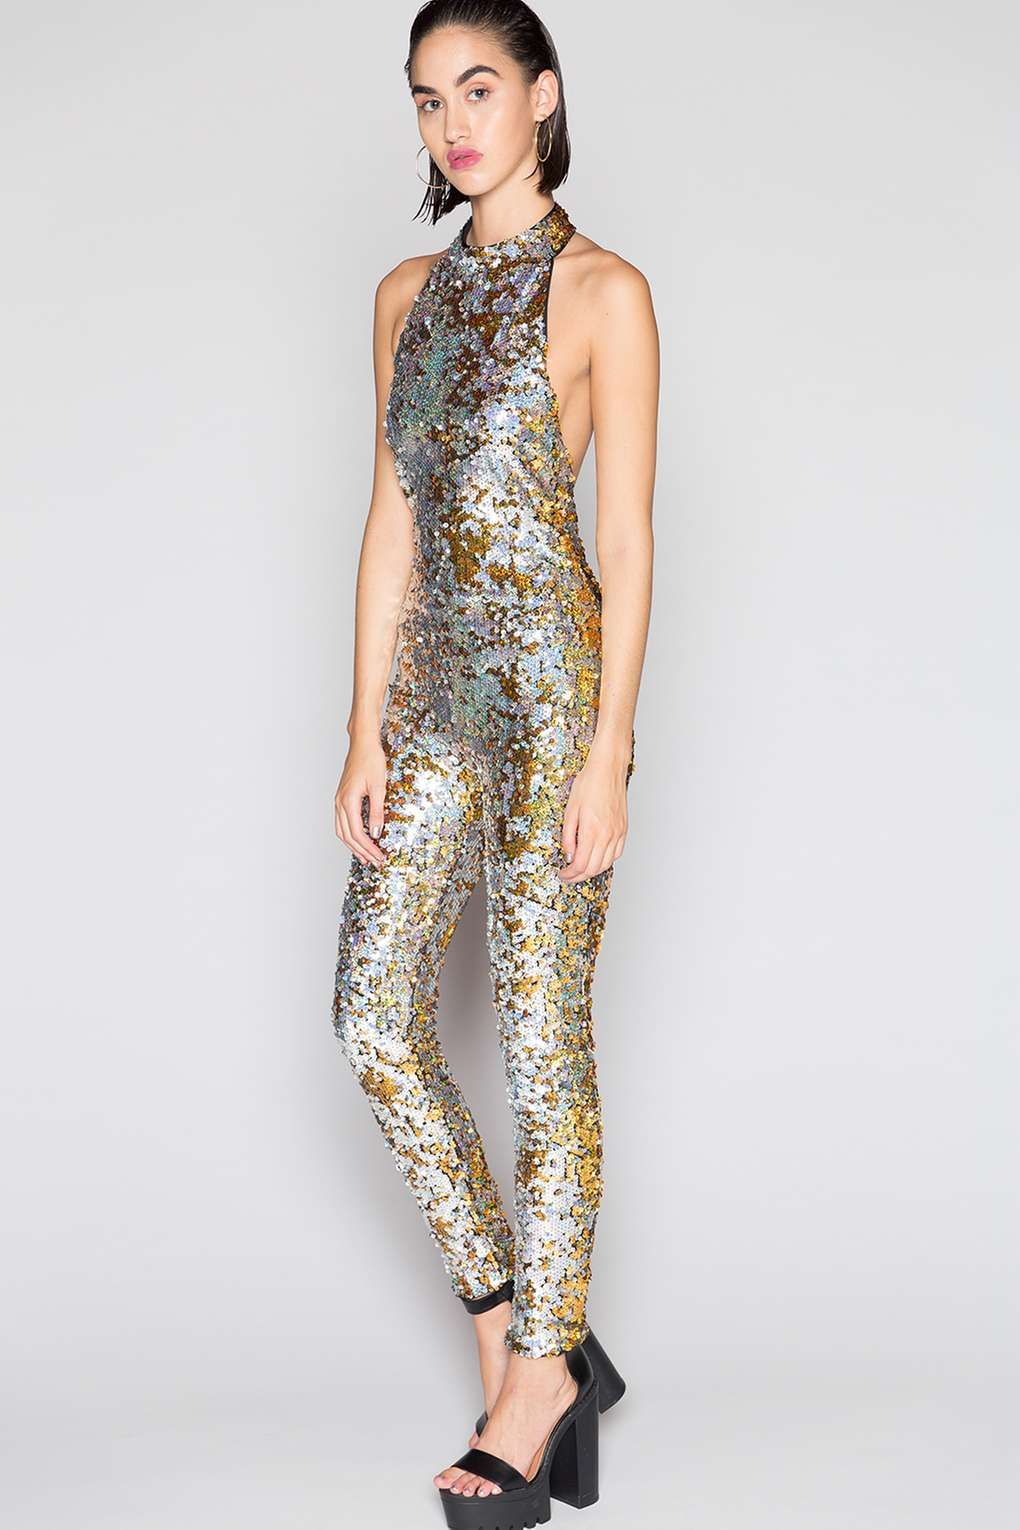 5553d467dd88   Gold And Silver Sequin Catsuit by Jaded London - Playsuits and Jumpsuits  - Clothing - Topshop Europe